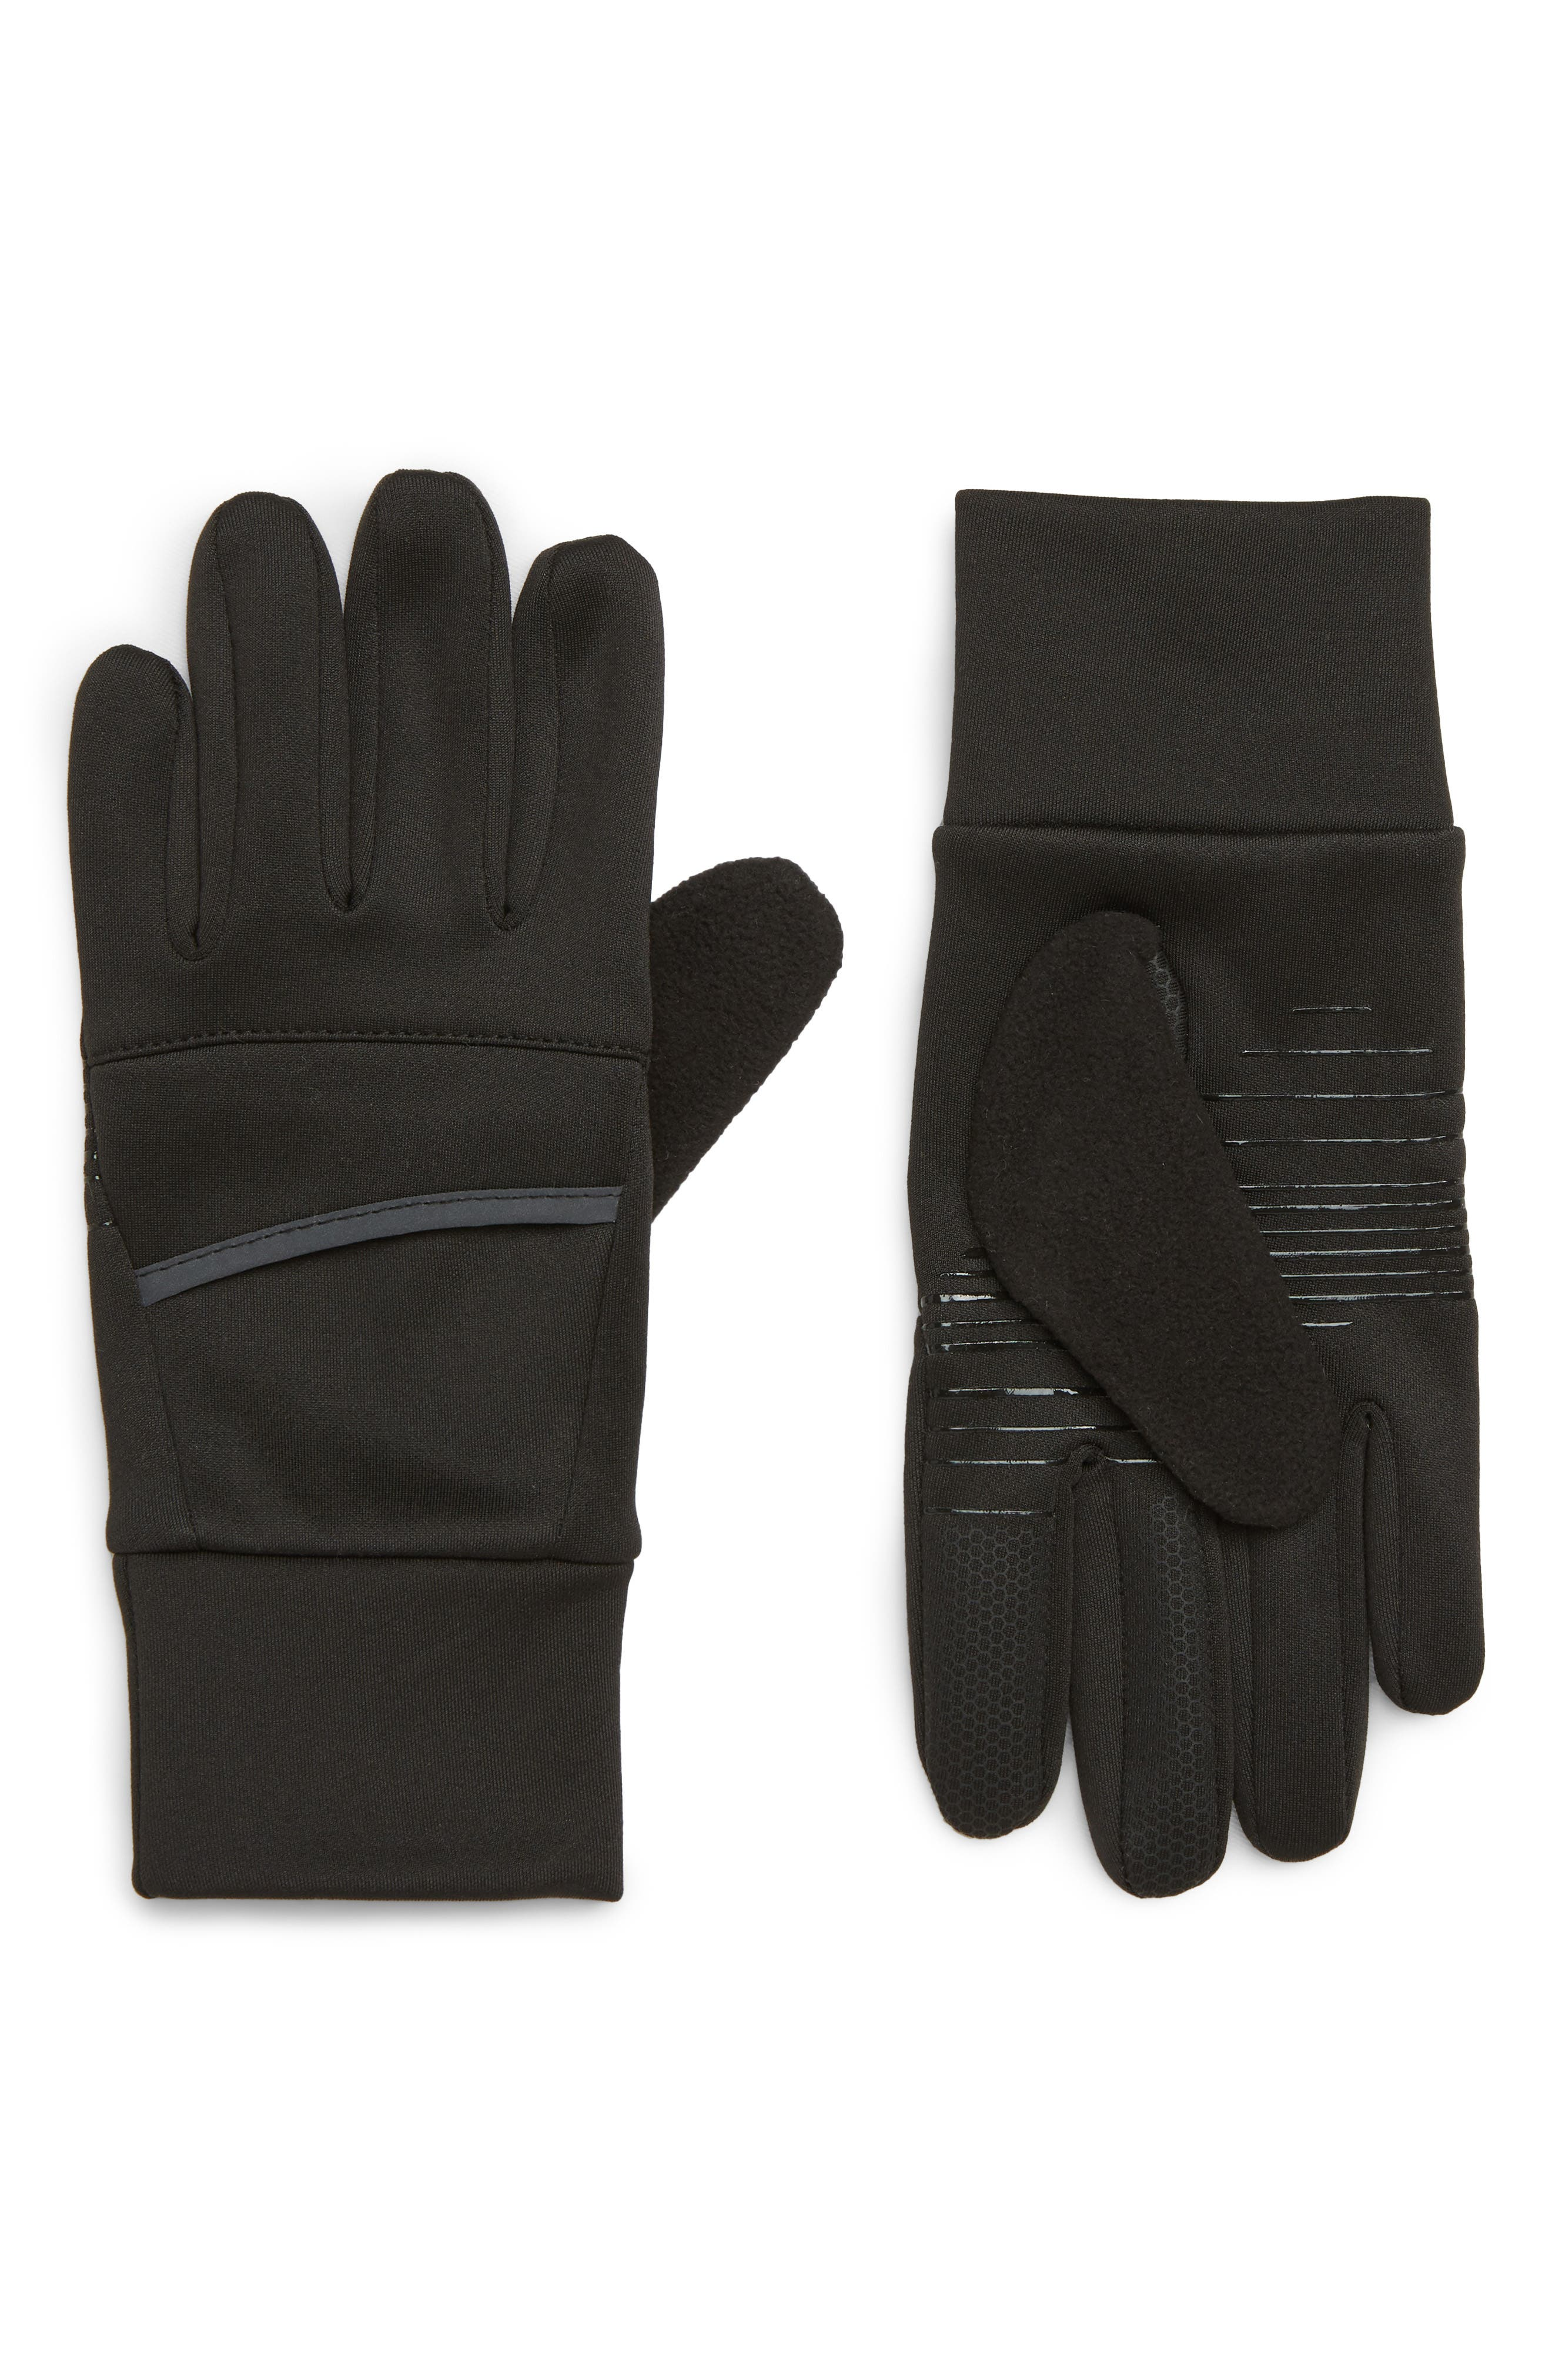 Tech Running Gloves,                             Main thumbnail 1, color,                             001